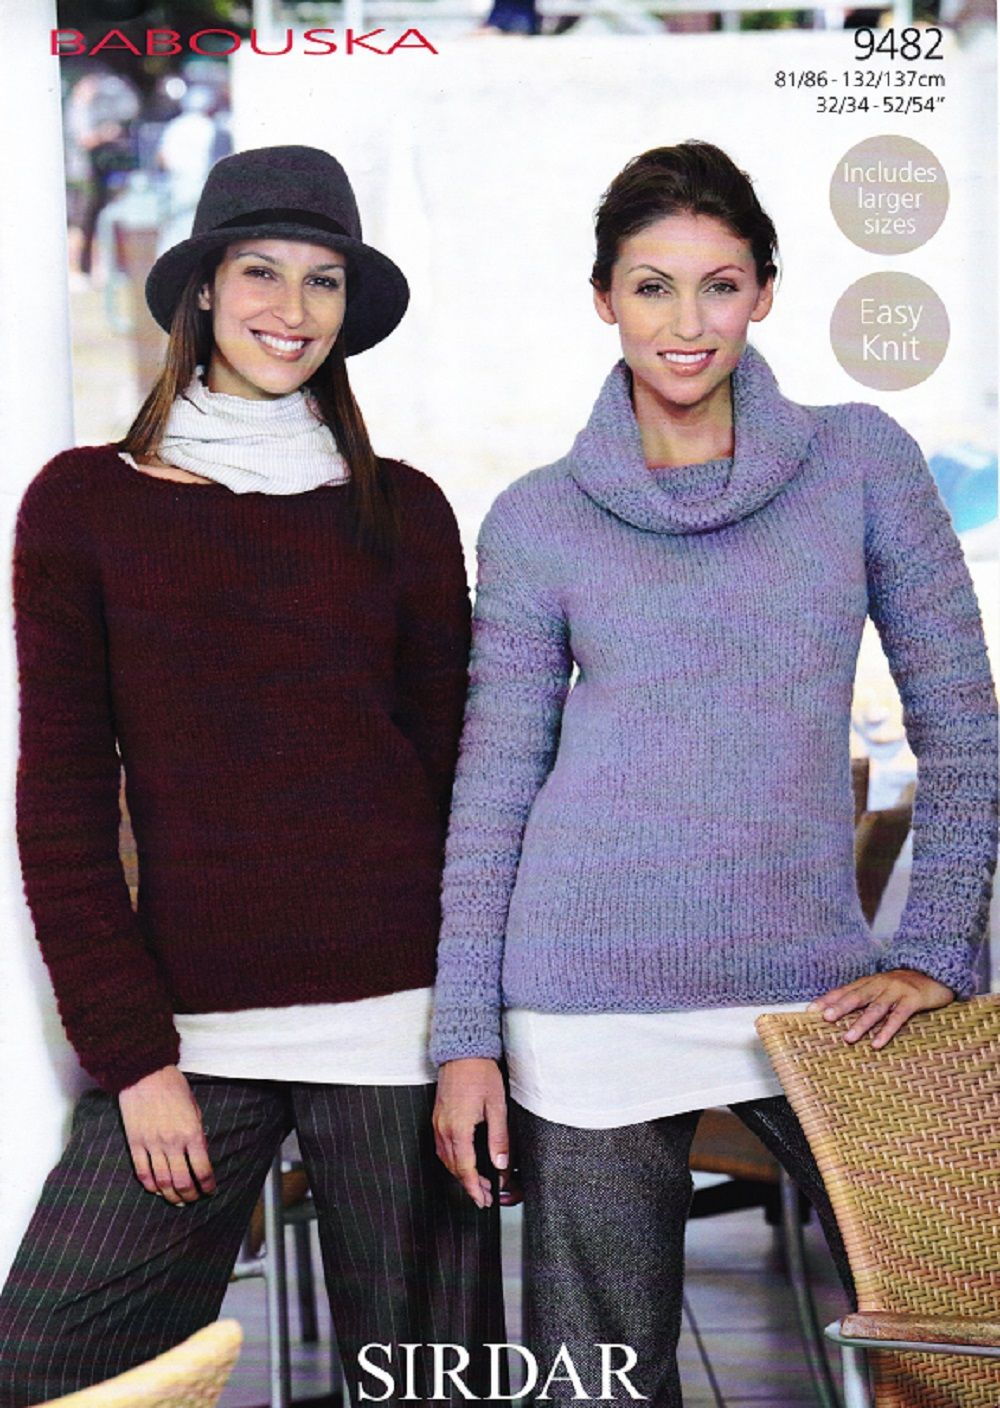 Sirdar Knitting Pattern 9482, Ladys Sweaters | Knitting Sewing ...